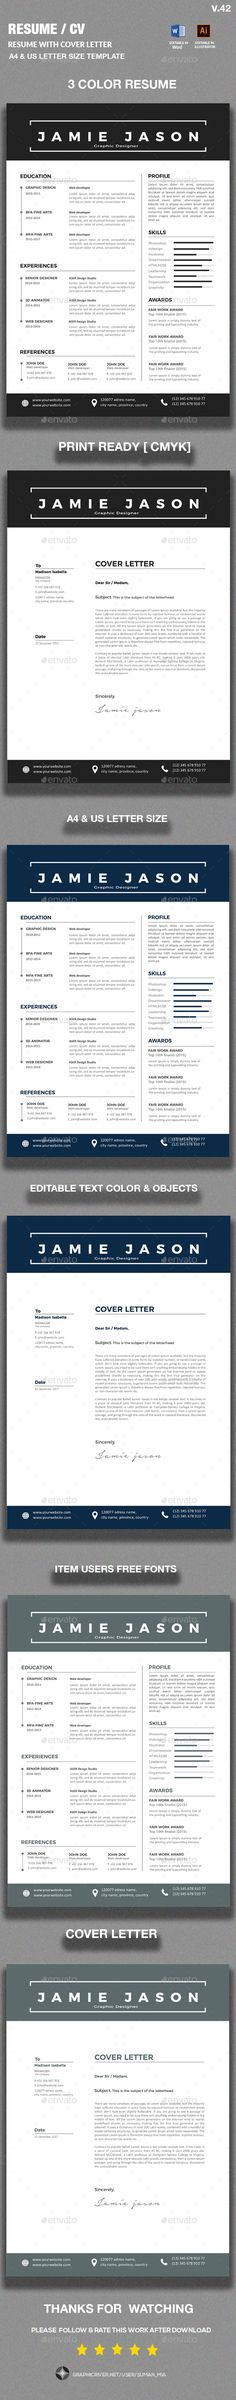 Marketing Executive Resume, Modern Resume Template, CV Template